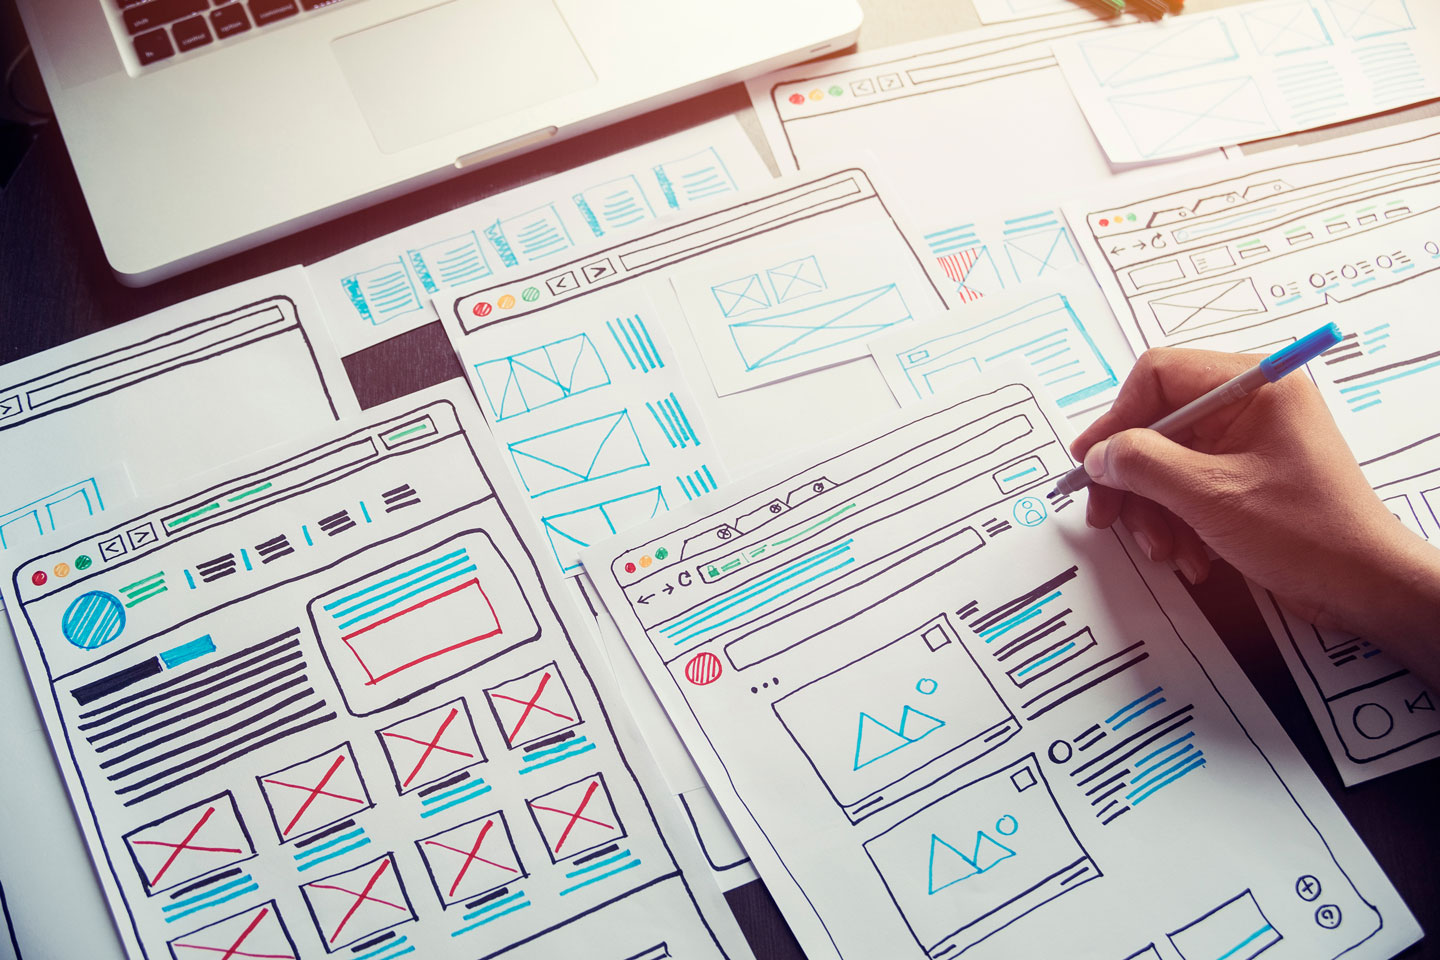 Your web developer should focus on a good user experience